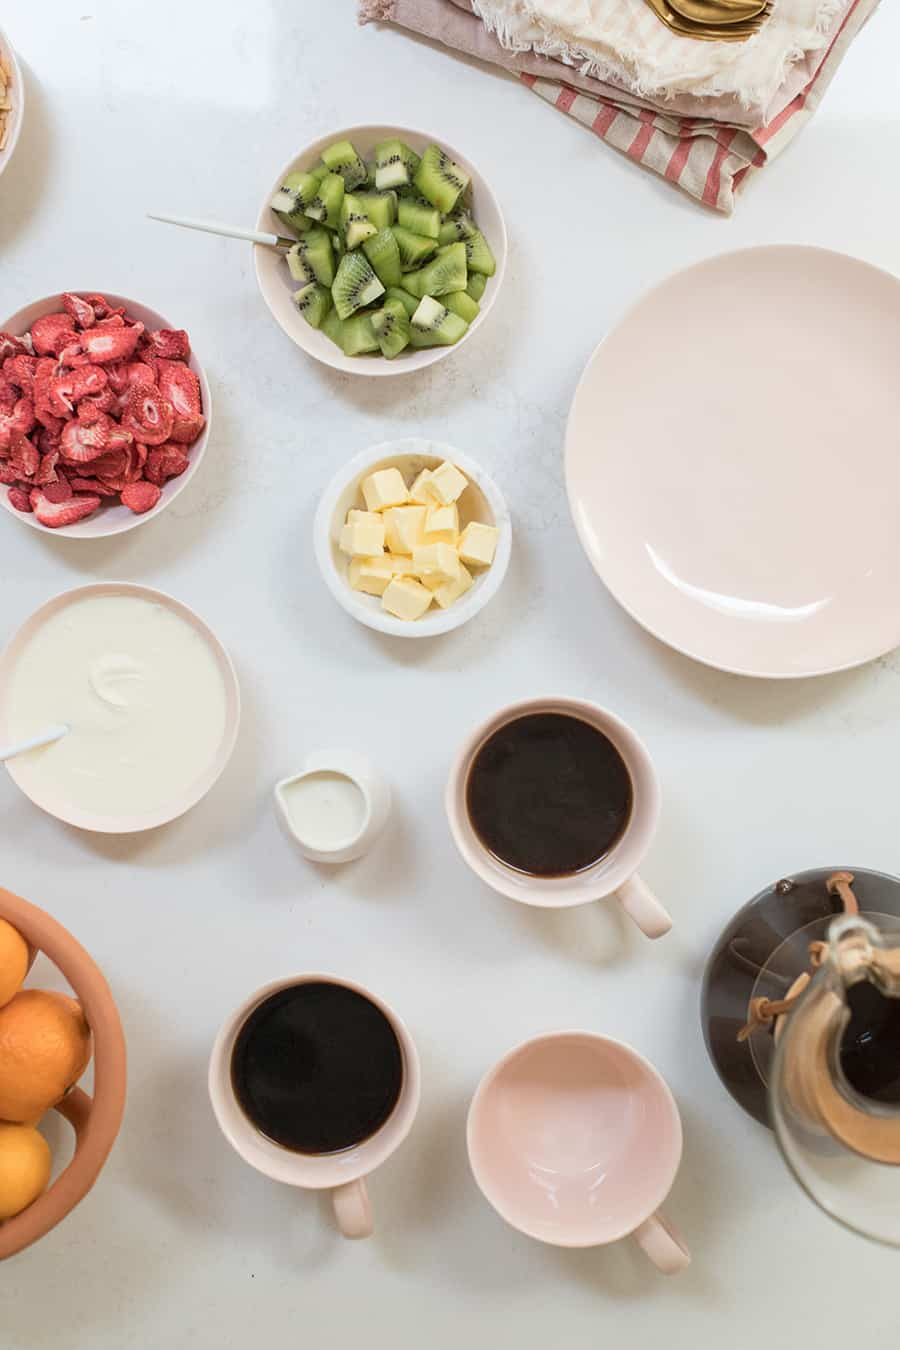 Pink dishes, coffee, butter, oranges and cream on a marble counter.